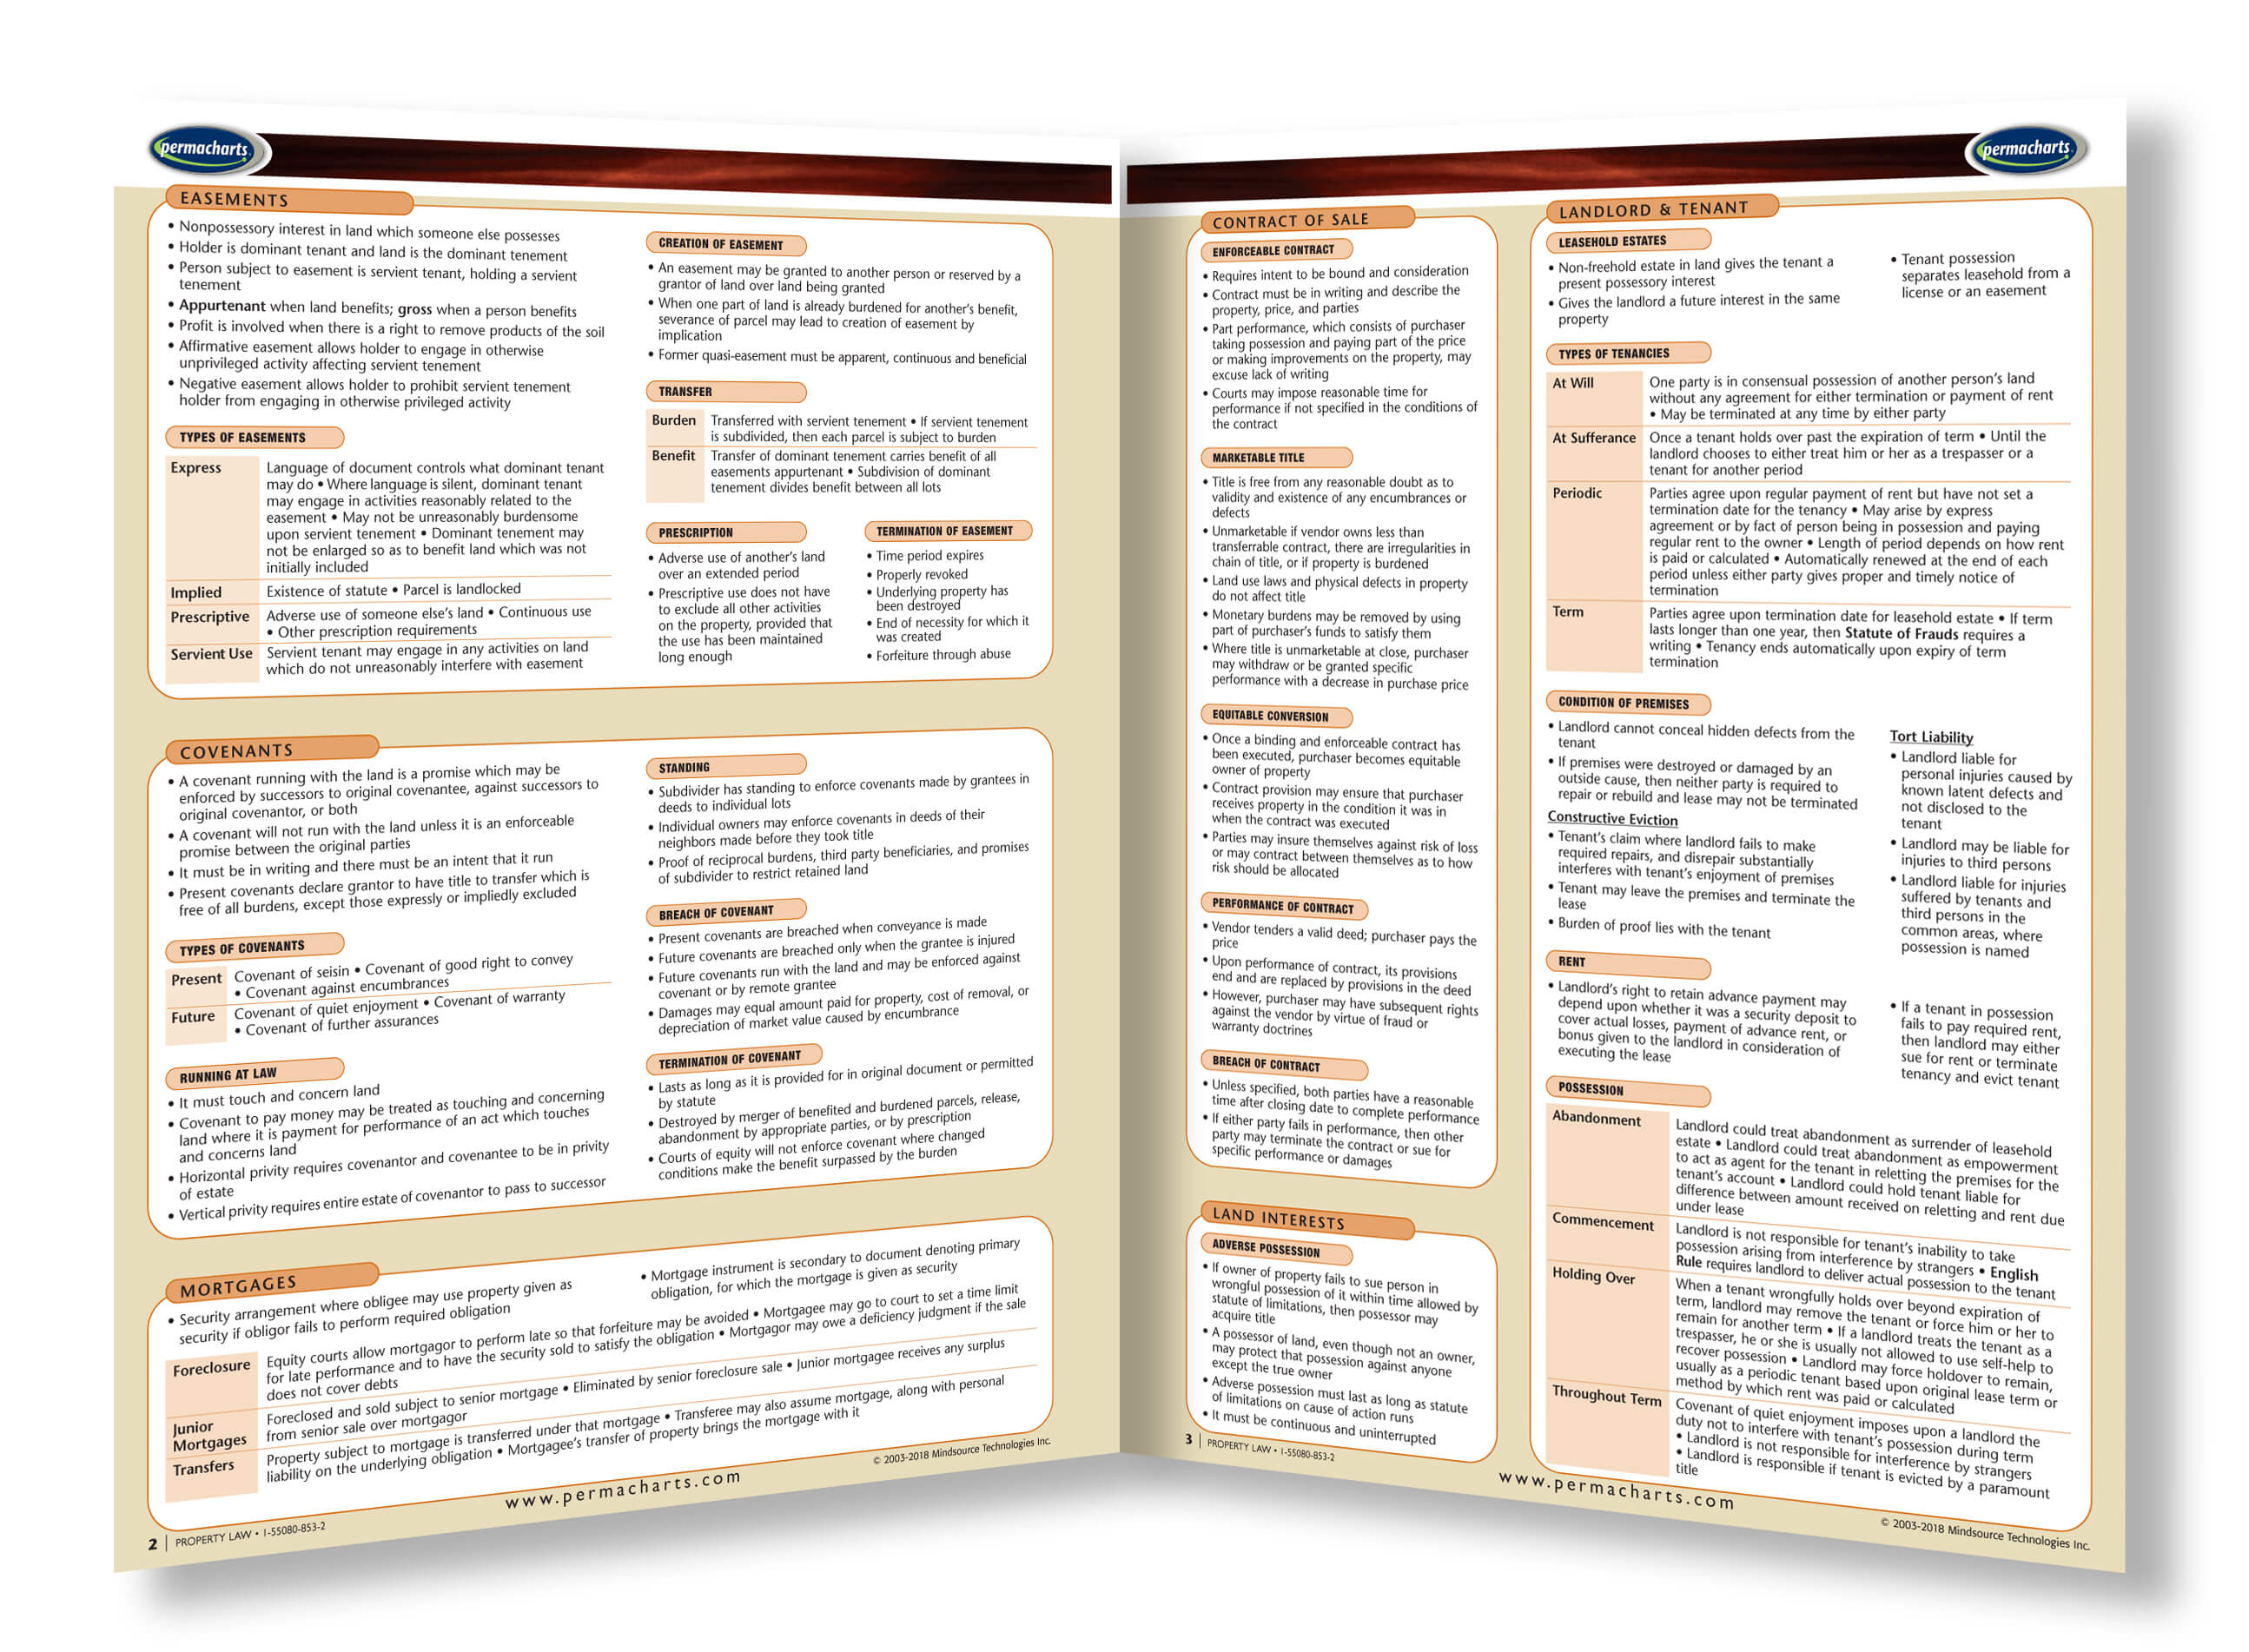 Property Law Study Guide - Quick Reference Resource